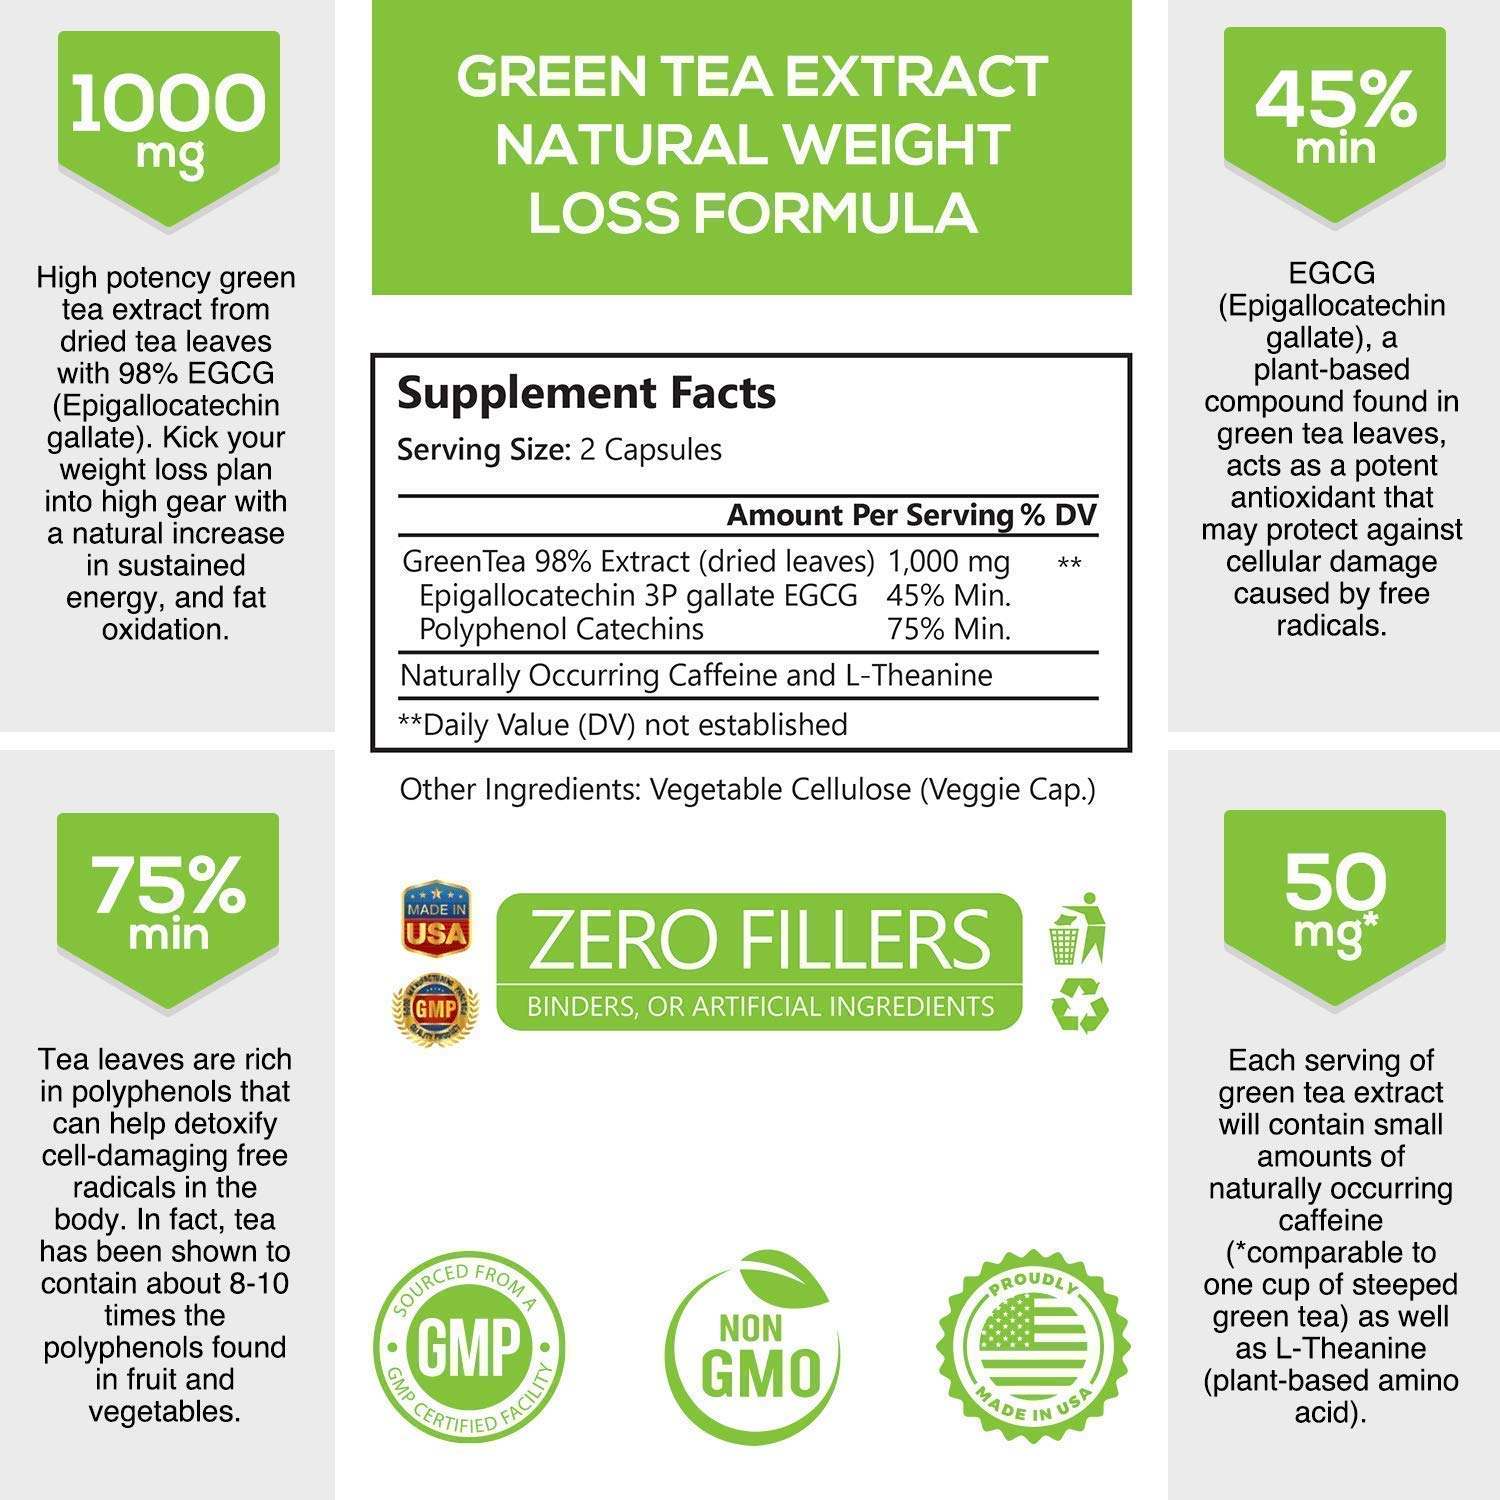 Green Tea Extract 98% Standardized EGCG for Weight Loss 1000mg - Boost Metabolism for Healthy Heart - Antioxidants & Polyphenols - Gentle Caffeine, Fat Burner Pills, Made in USA - 60 Capsules